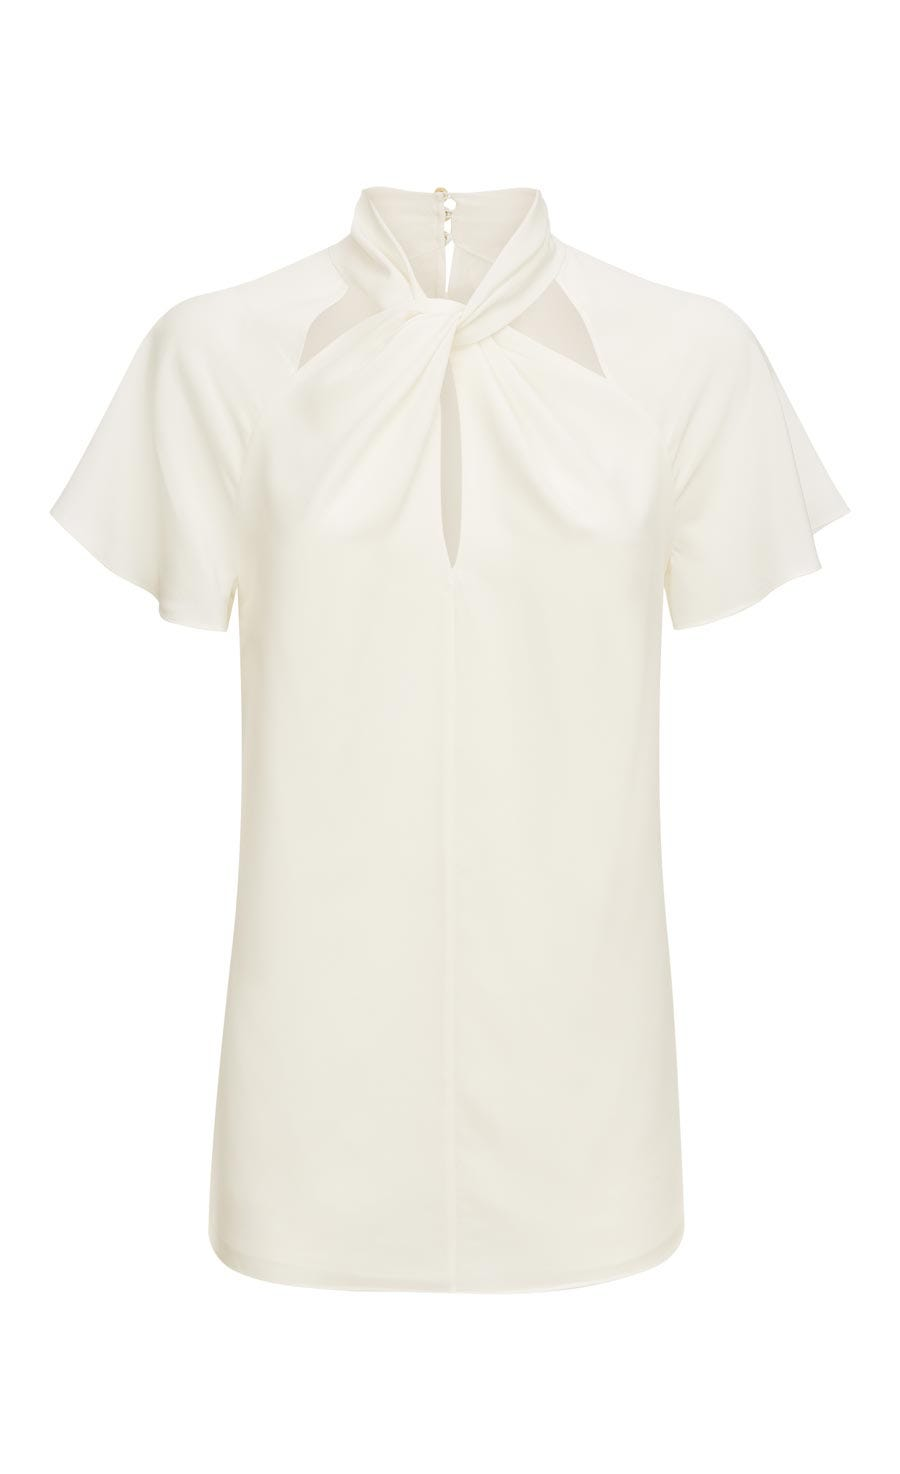 Purity Twisted Blouse, White